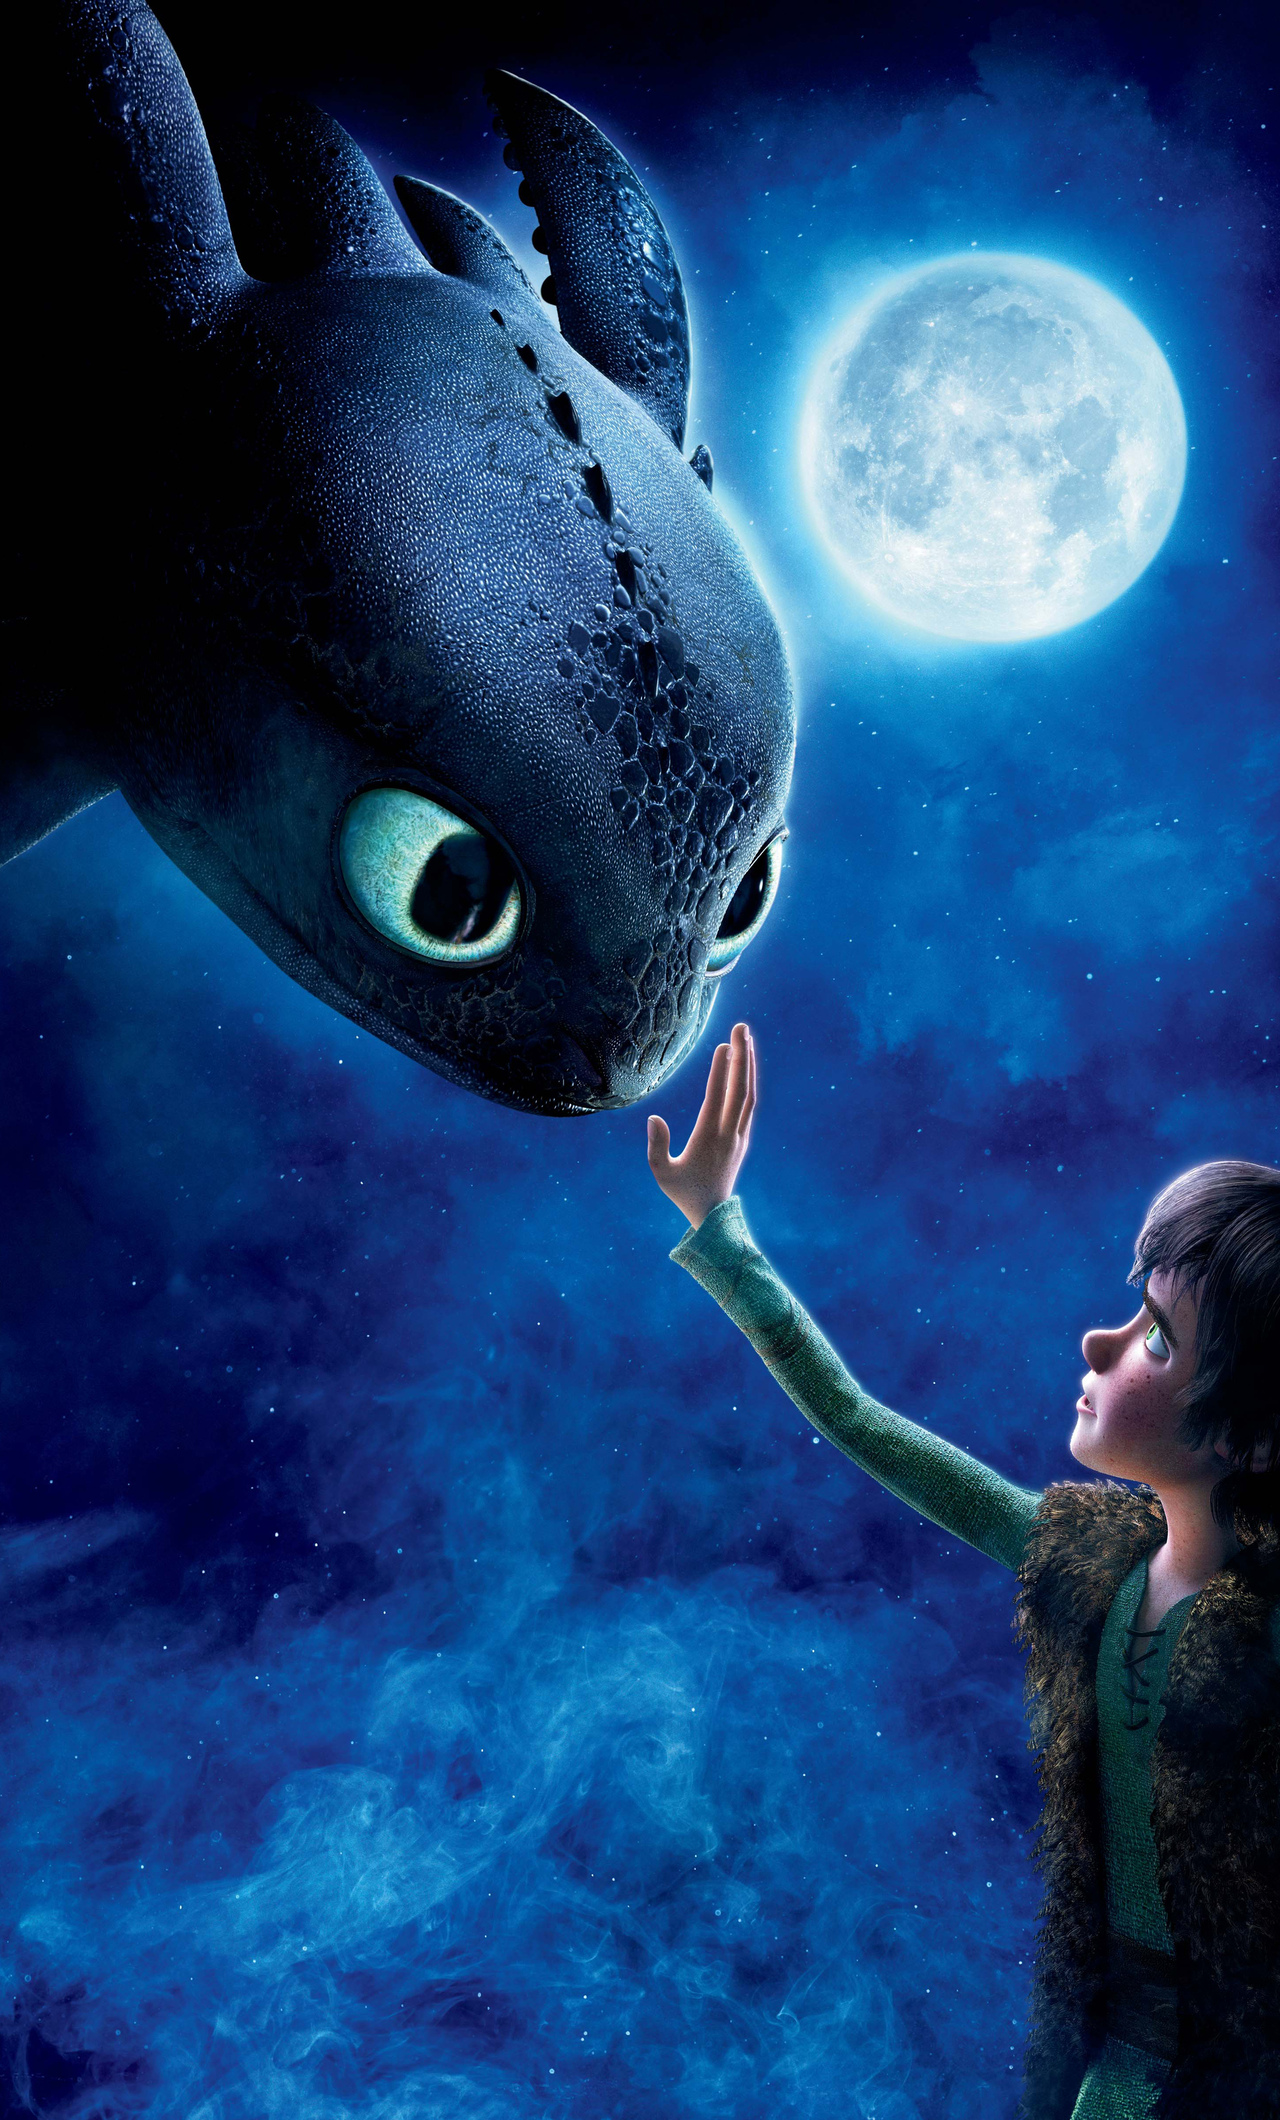 1280x2120 toothless how to train your dragon iphone 6 hd - How to train your dragon hd download ...